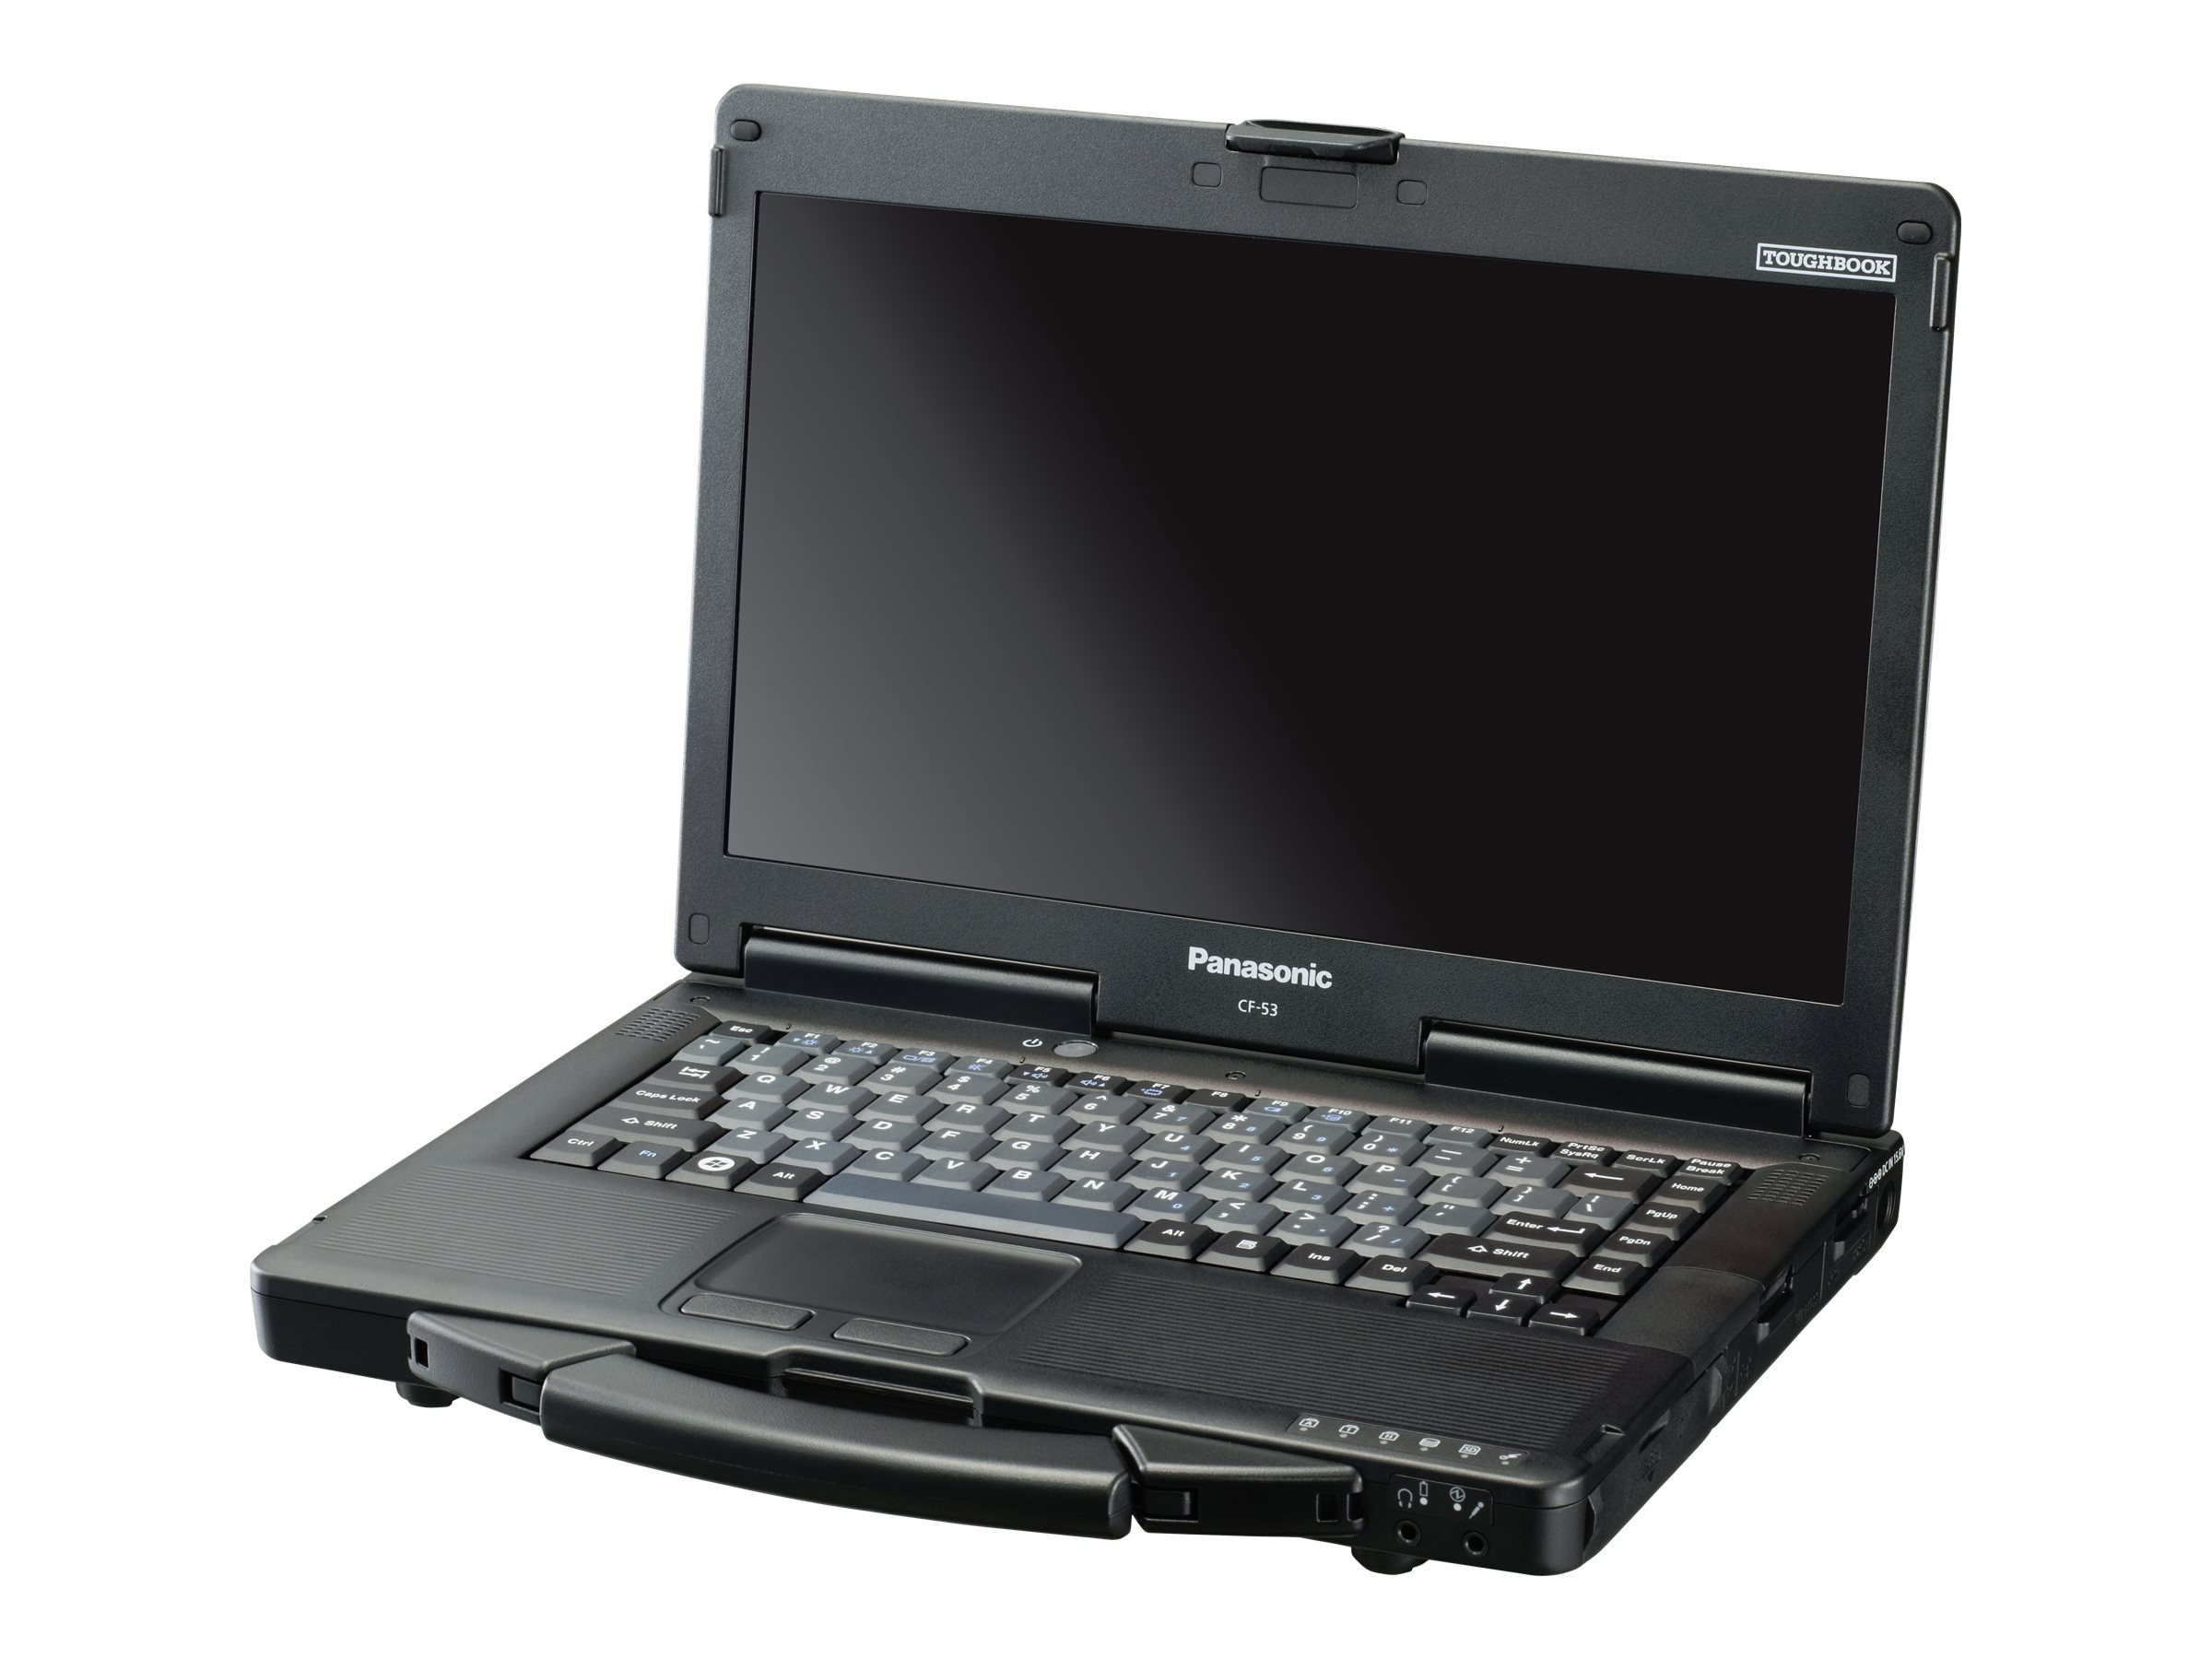 Panasonic Toughbook 53 Core i5-4310U 2.0GHz vPro 14 HD Touch W7-W8.1P COA, CF-532ULZYCM, 17696761, Notebooks